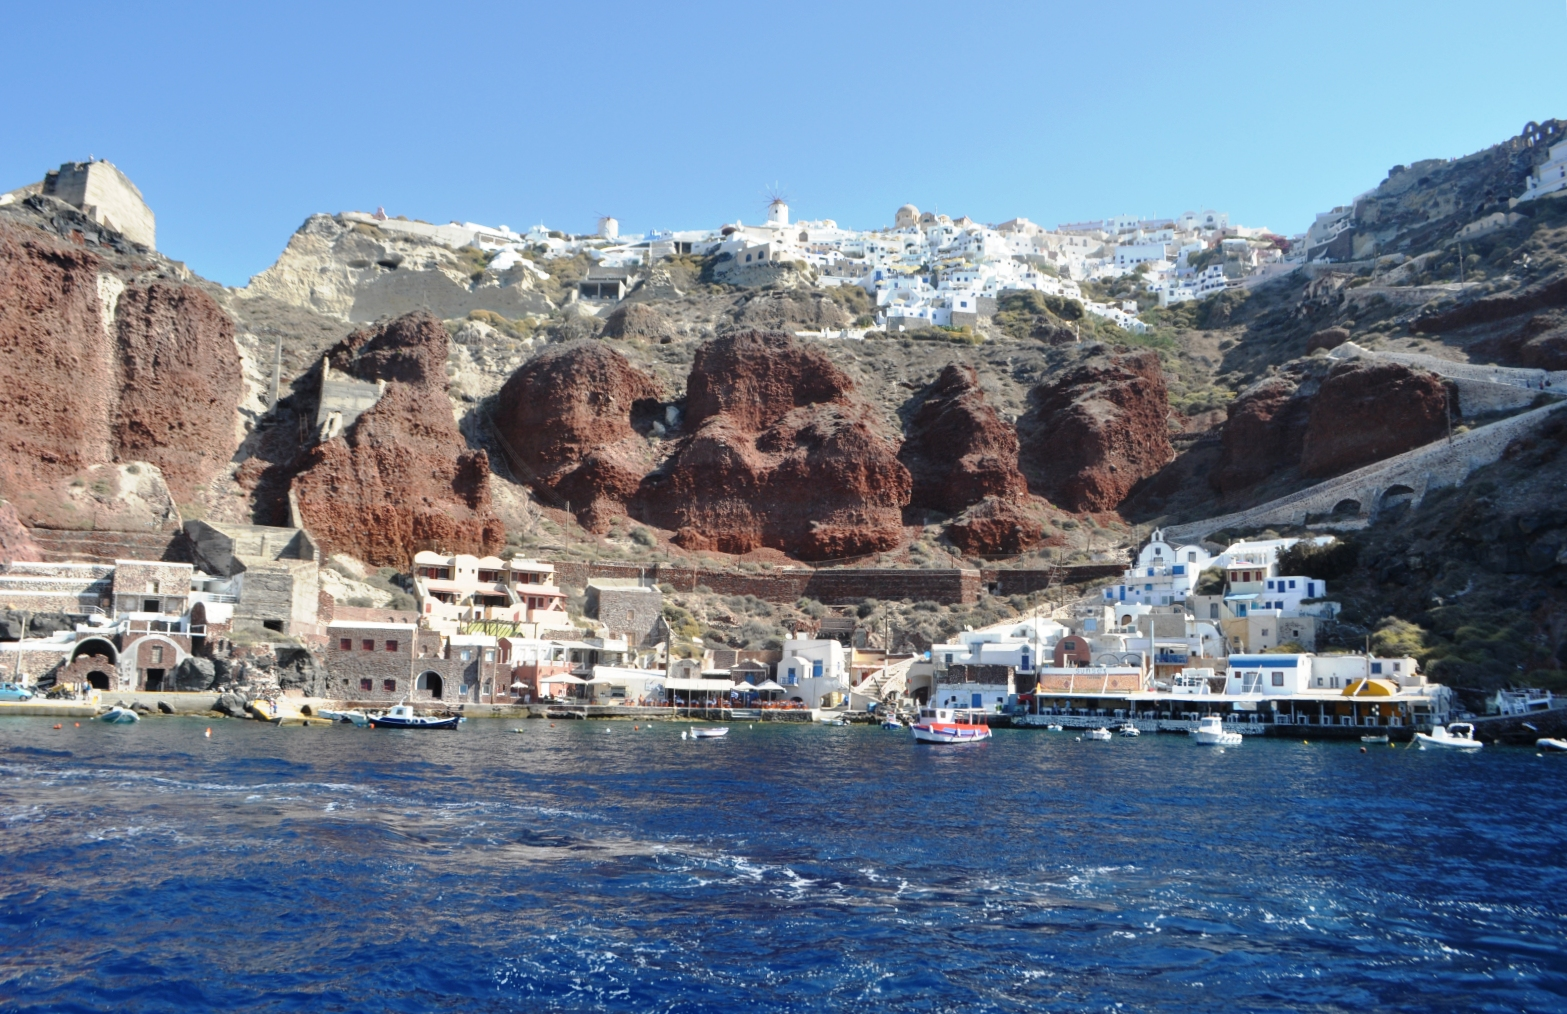 The greek islands a study beyond blue and white buckettripper